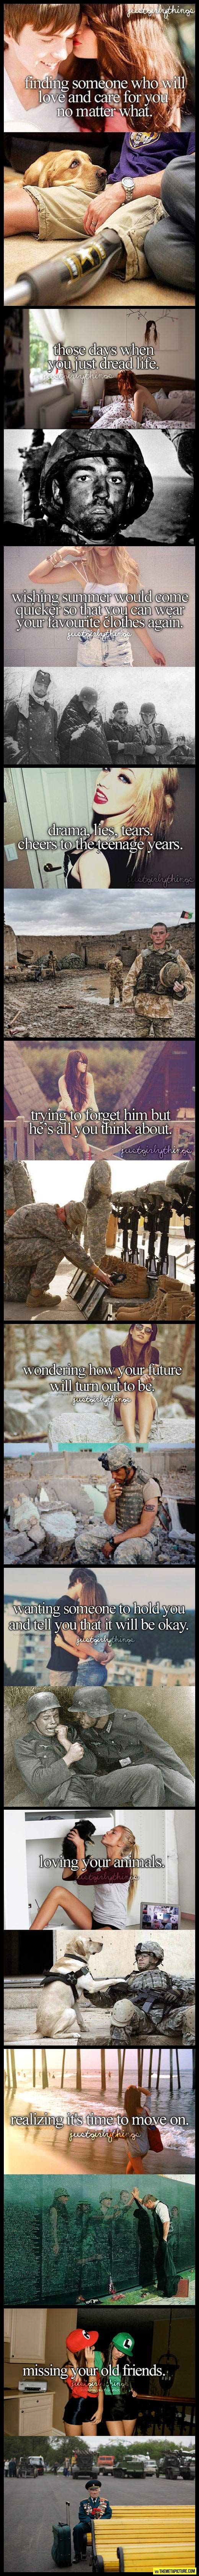 Things in perspective. Glad somebody made this, because all those stupid teen posts annoy the crap out of me. Our troops don't get enough recognition as it is and they have one of the hardest jobs out there and most do it without complaining. Thanks to the soldiers, sailors, marines, and airmen!